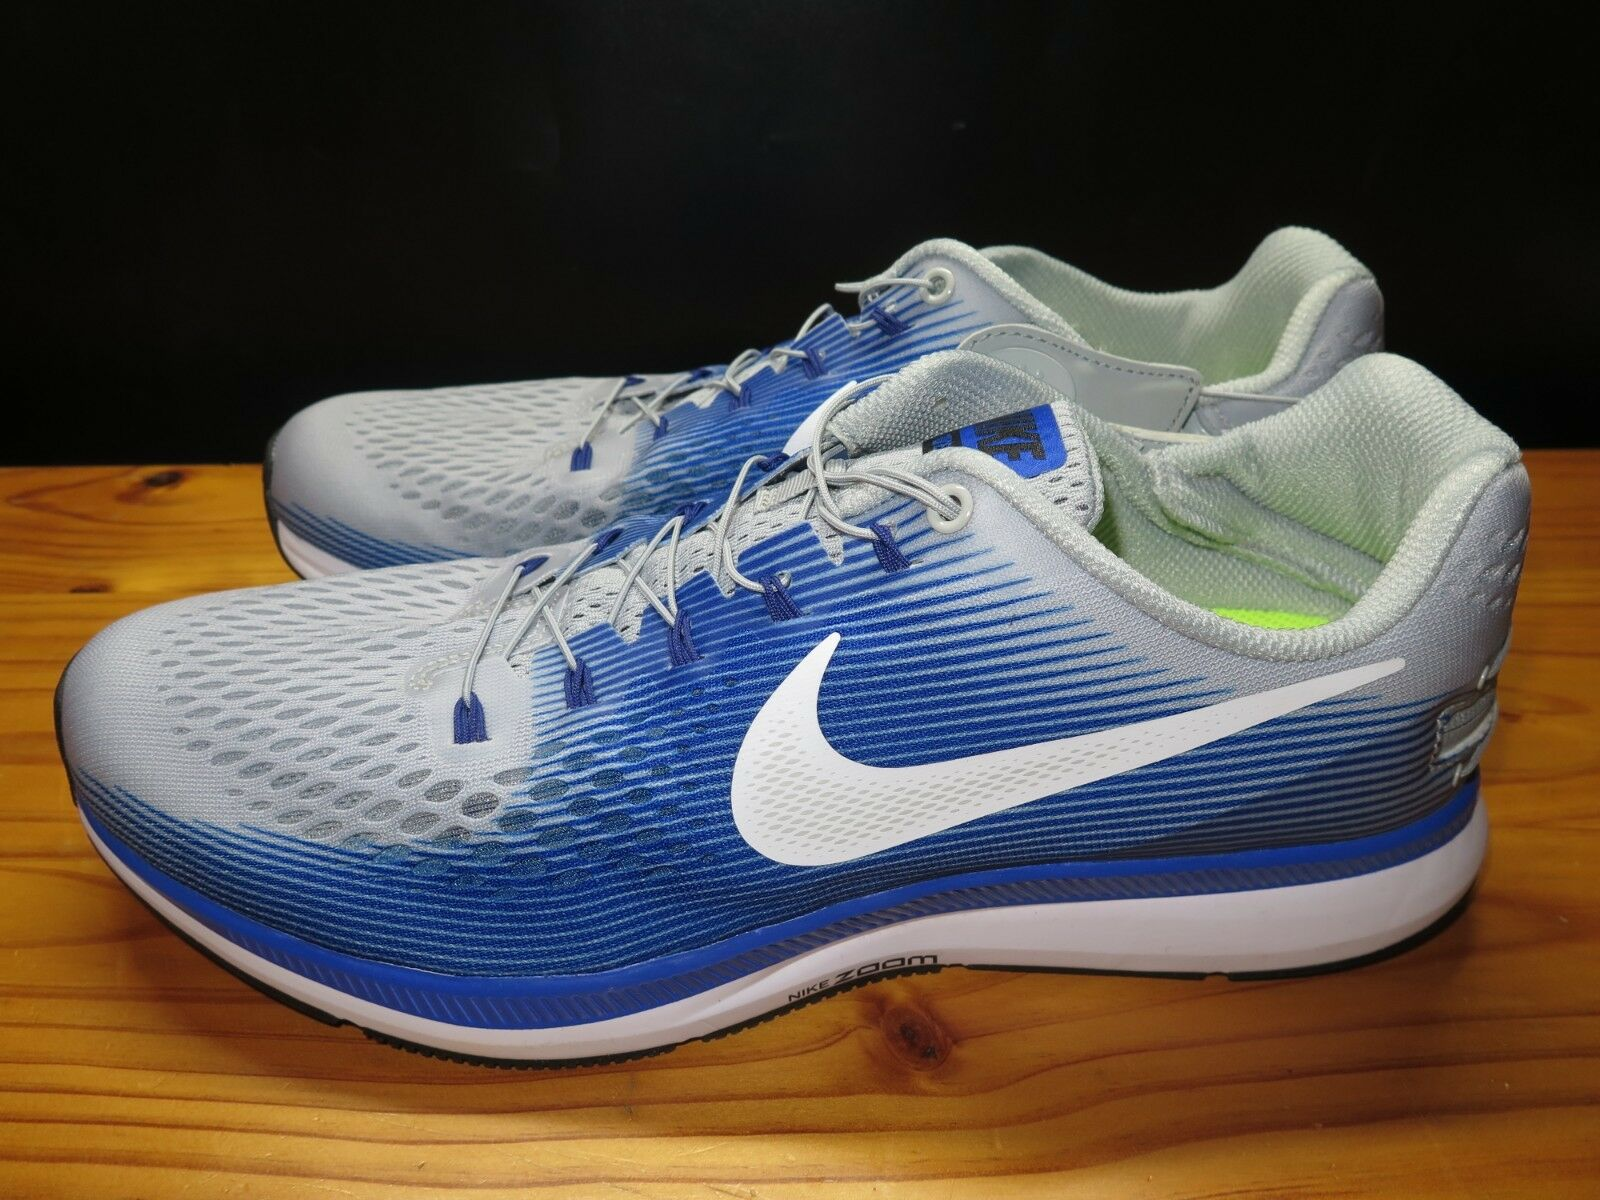 NEW Nike Air Zoom Pegasus 34 Flylease Wolf Grey bluee 904678-004 Size 12